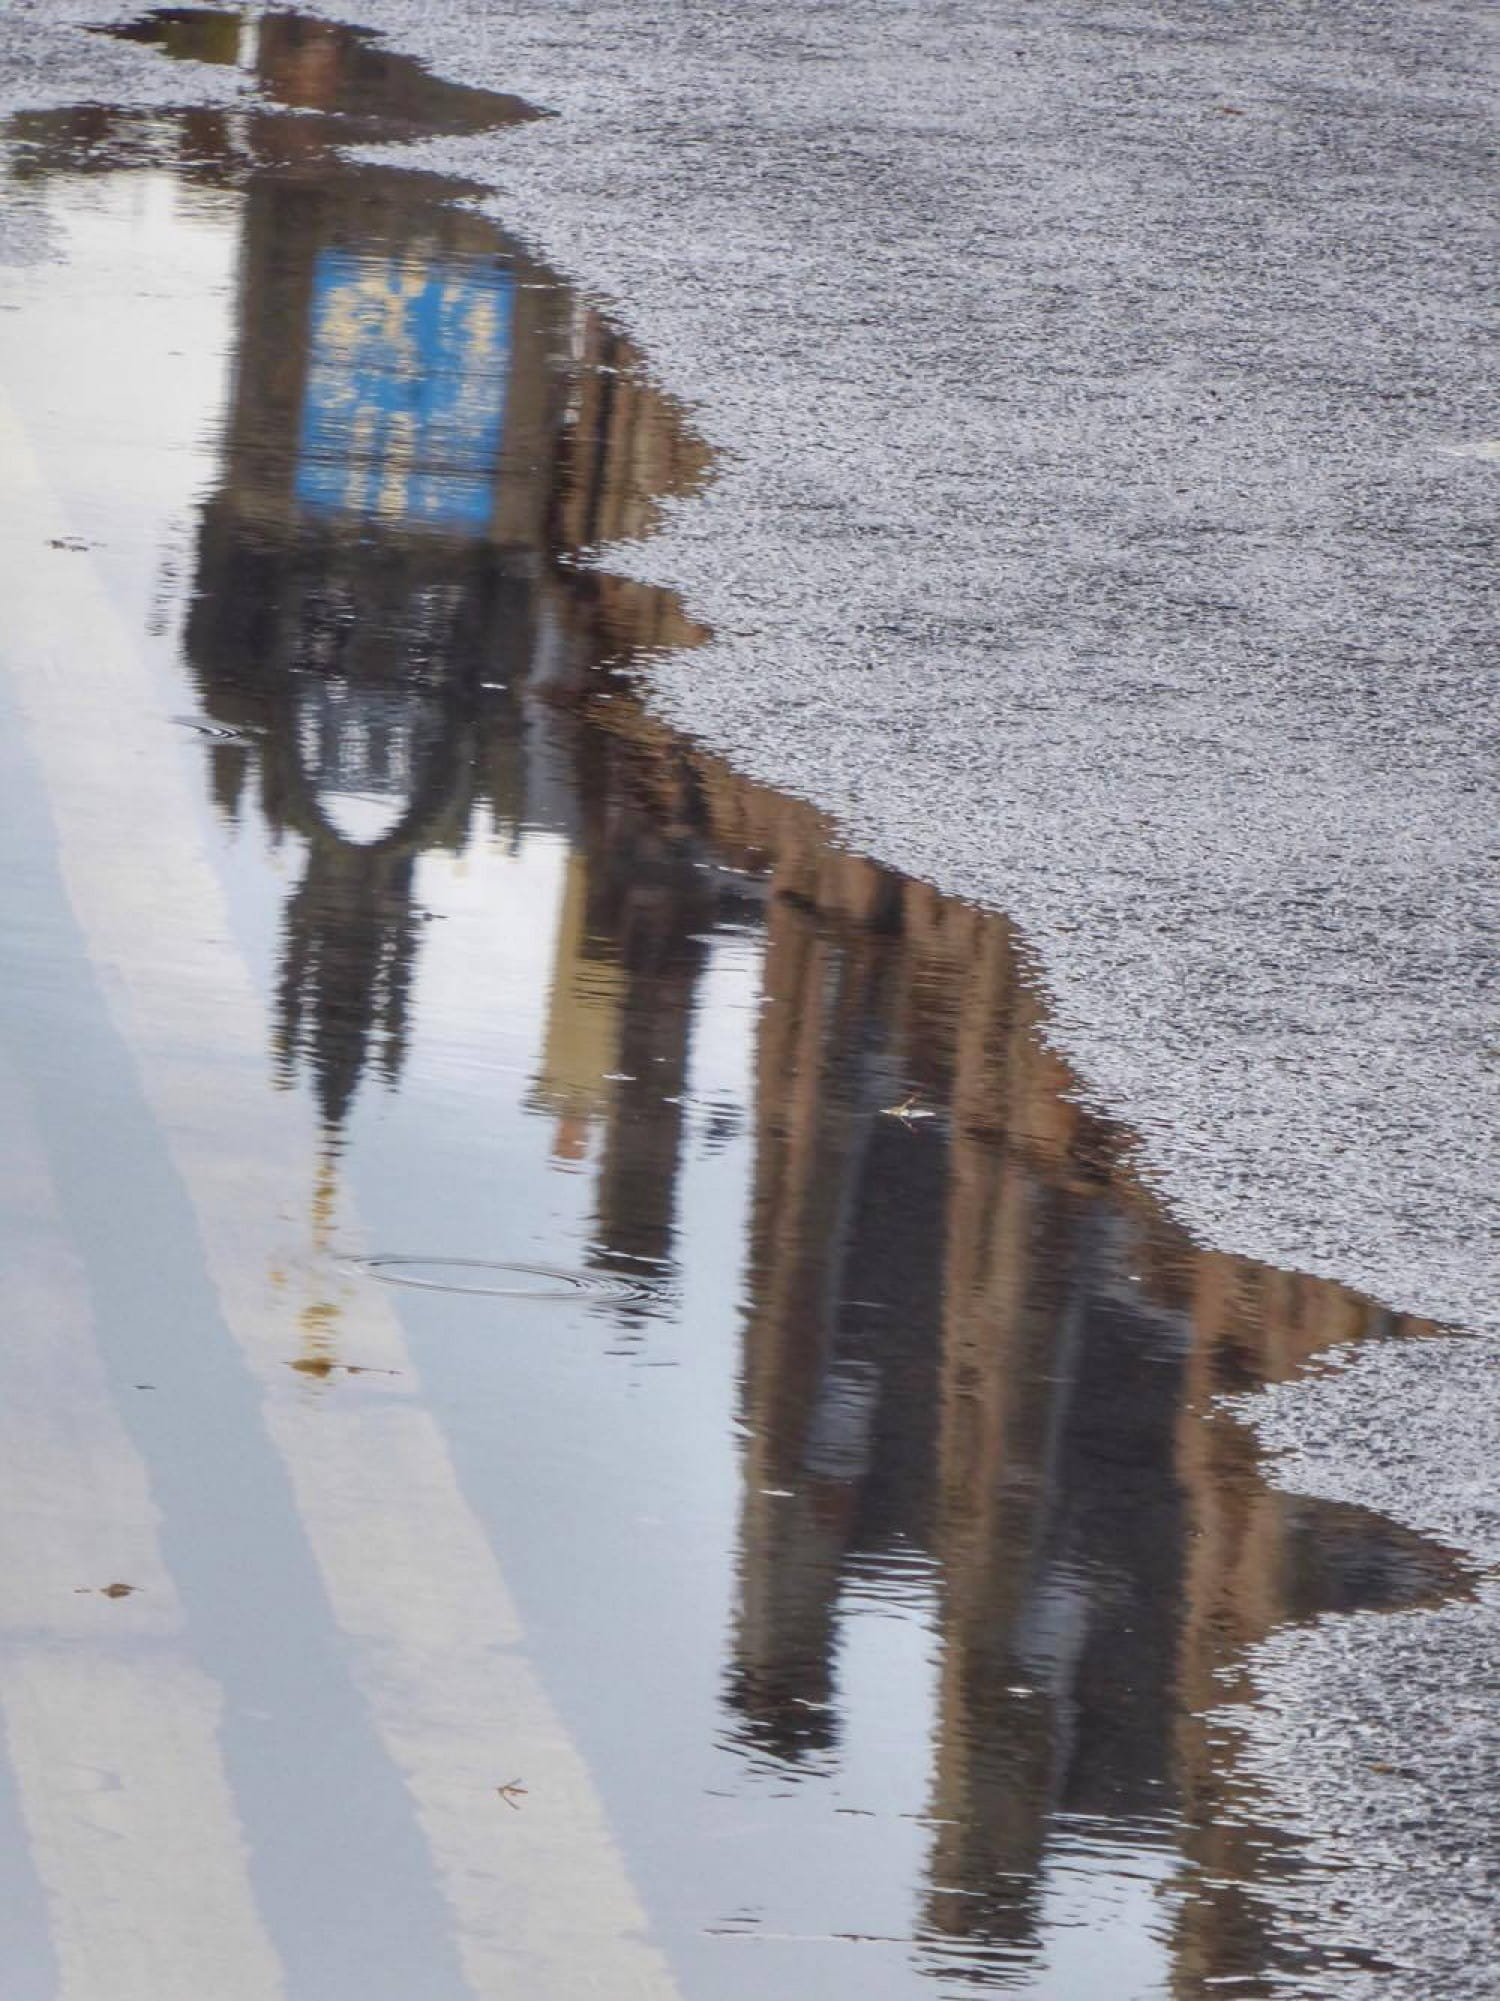 Reflections on a soggy city...